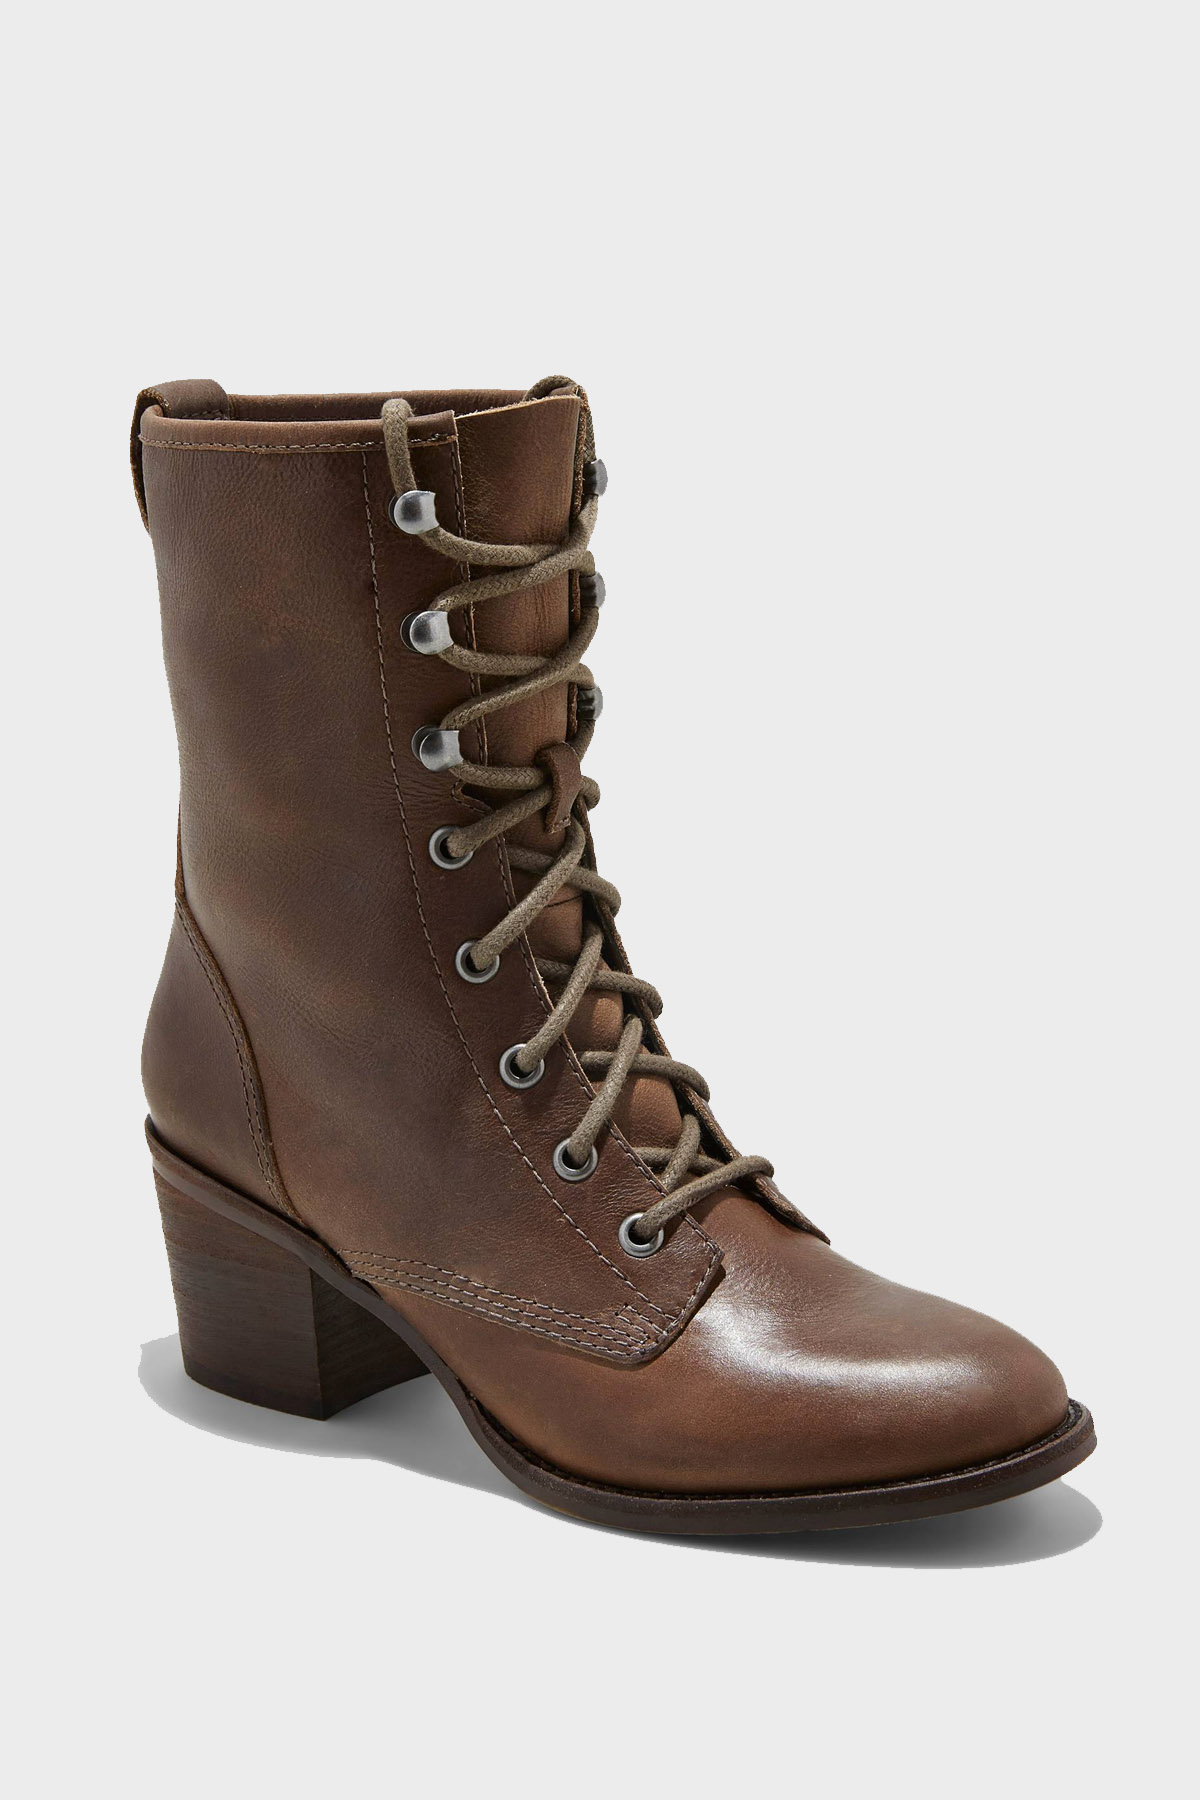 Dressy or casual, flat or heeled – a pair of boots completes every woman's closet!Apparel, Home & More · New Events Every Day · Hurry, Limited Inventory · New Deals Every Day57,+ followers on Twitter.